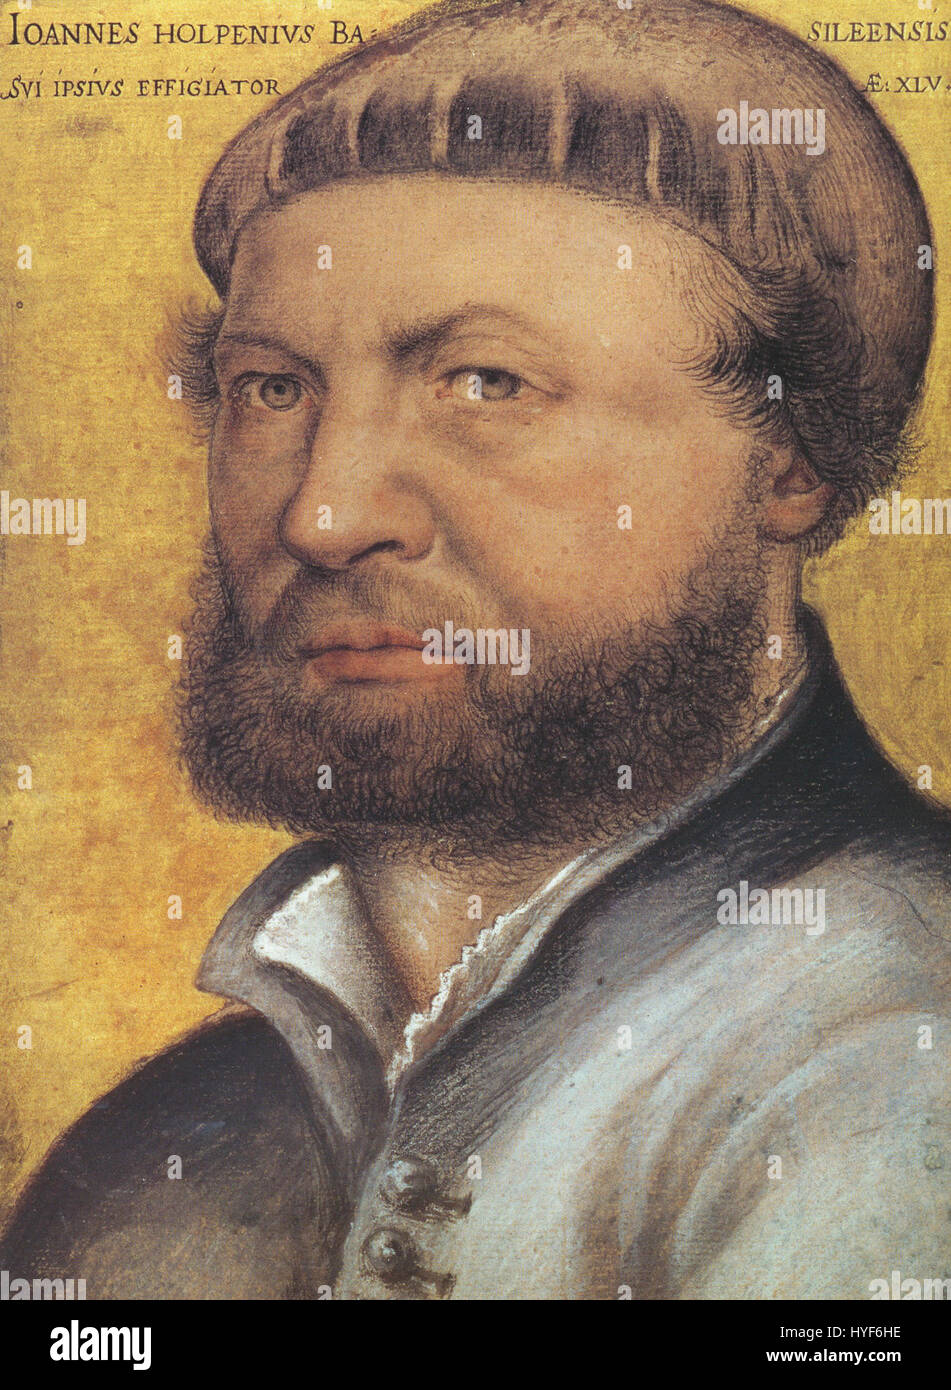 Hans Holbein the Younger, self portrait - Stock Image